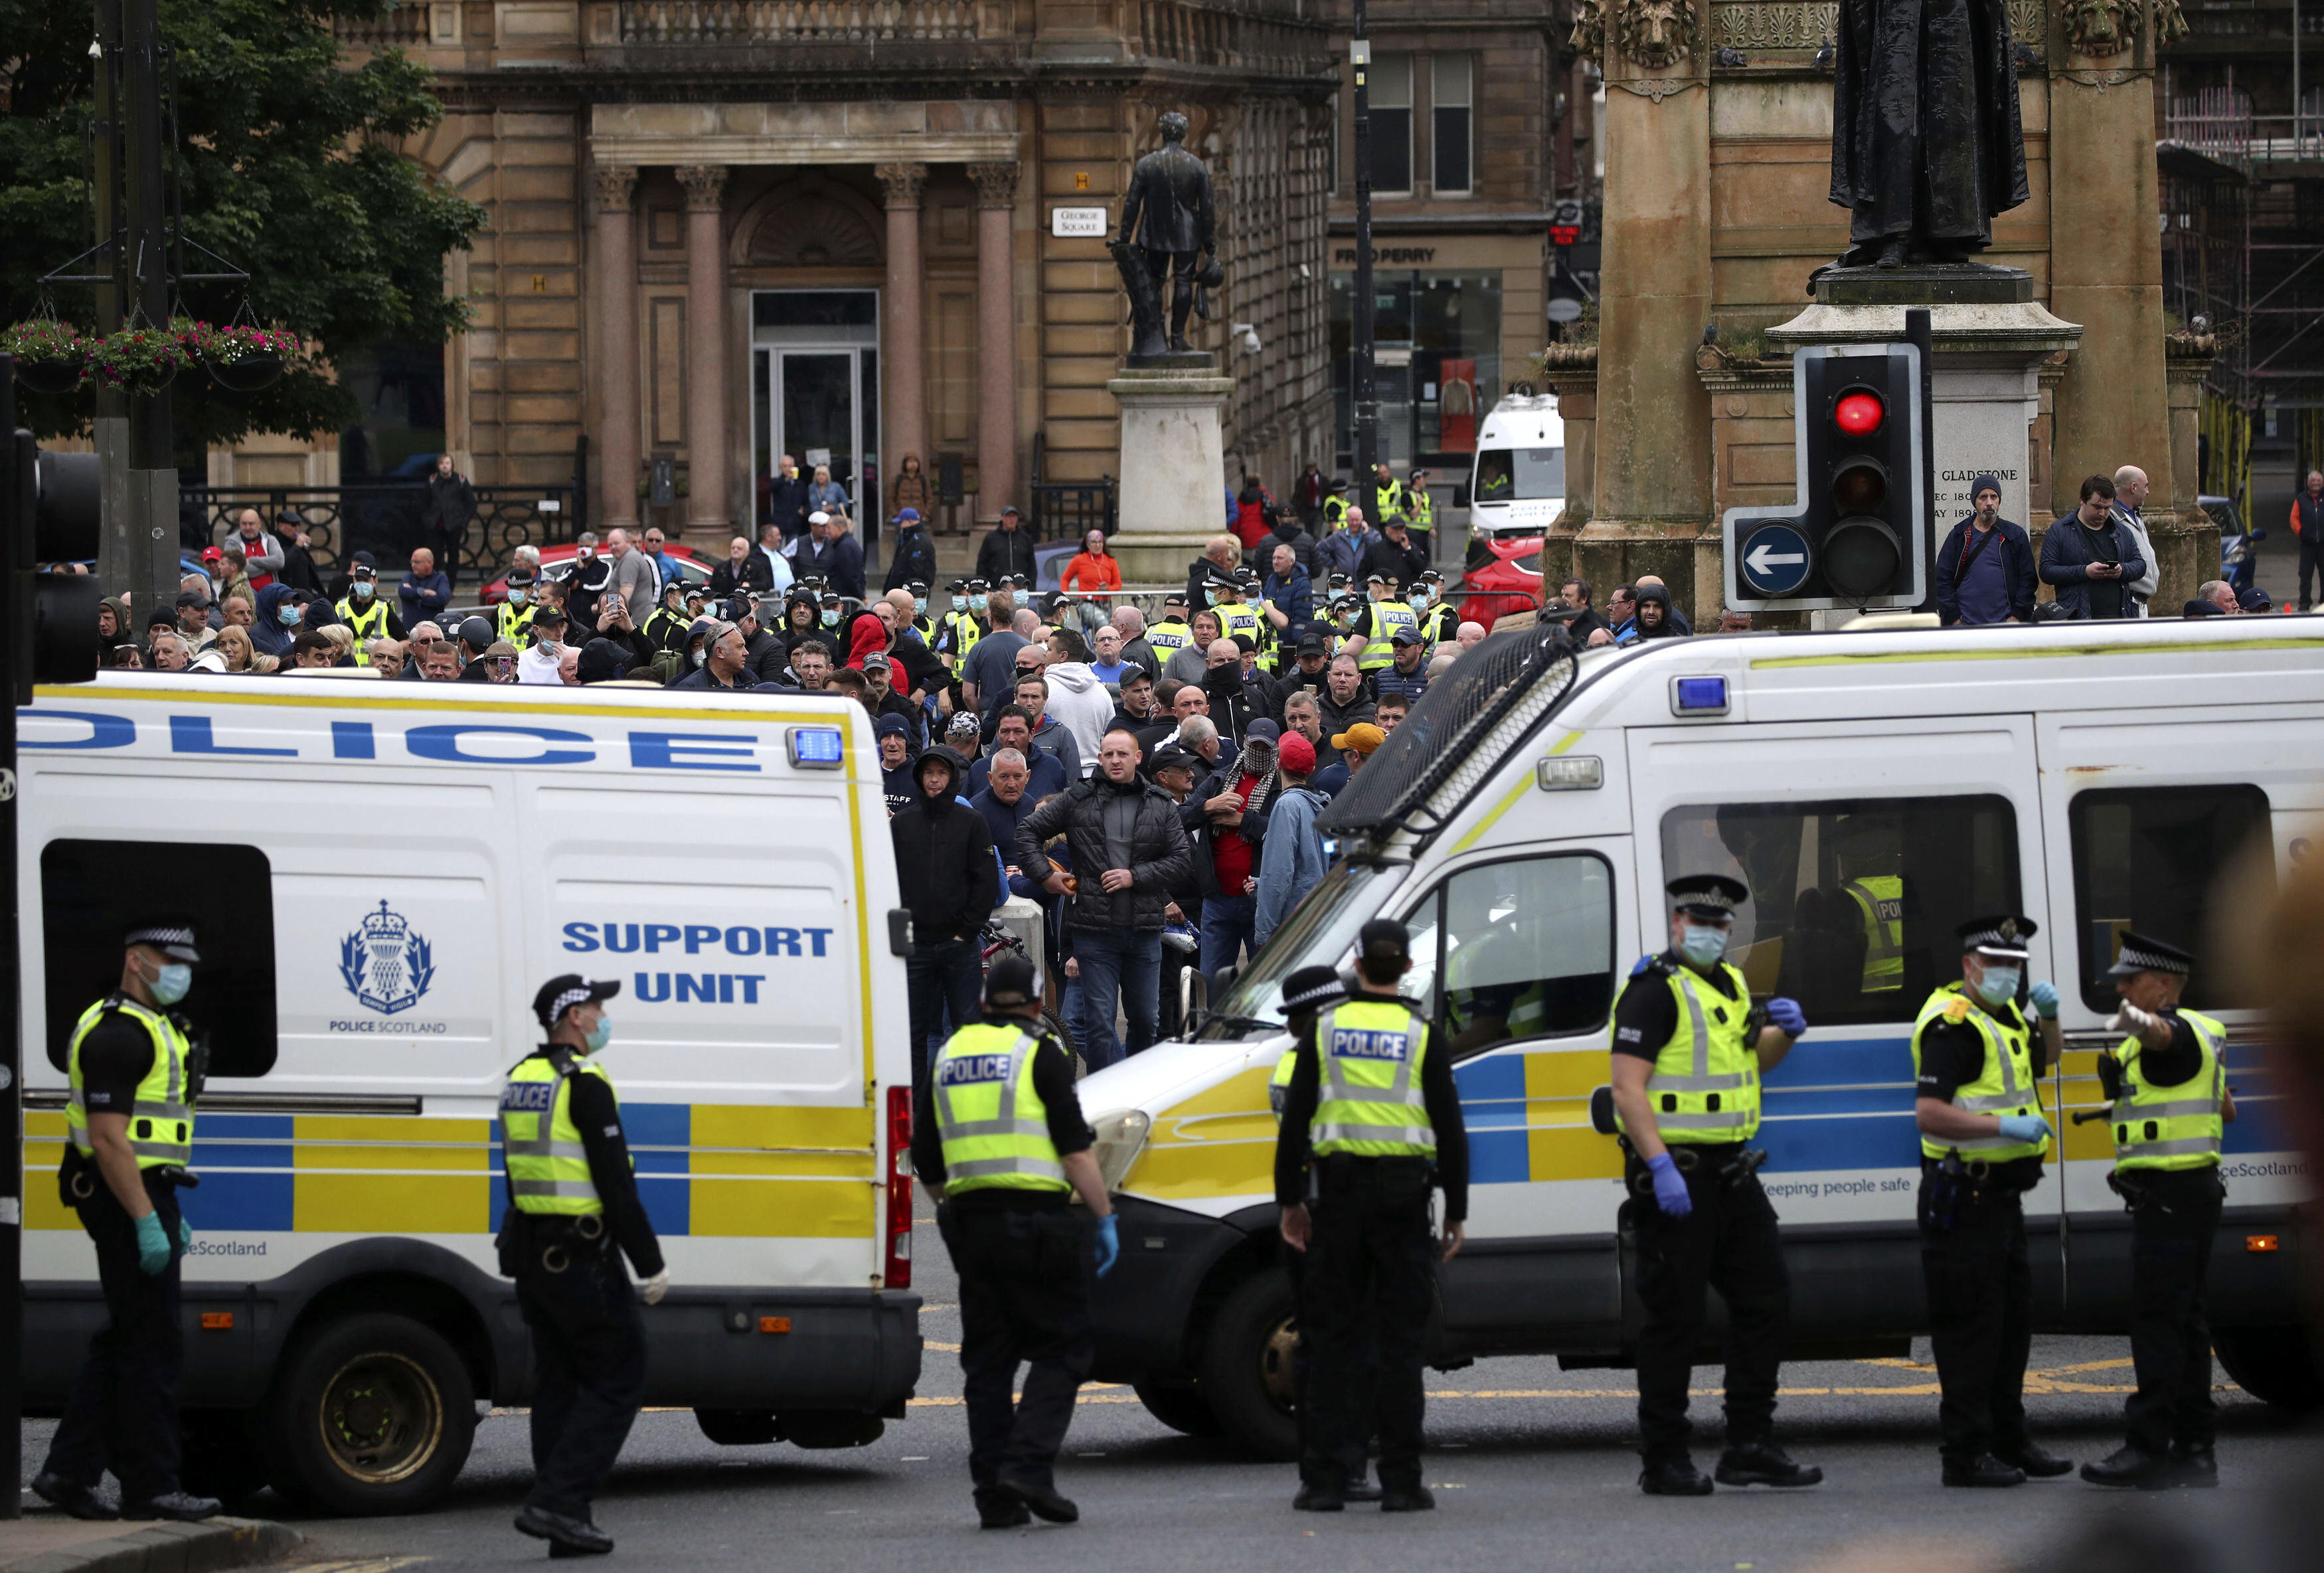 Loyalist Defence League members gather in George Square in Glasgow, Sunday June 14, 2020, during a protest between people calling for the removal of a statue Robert Peel and counter protesters. (Jane Barlow/PA via AP)